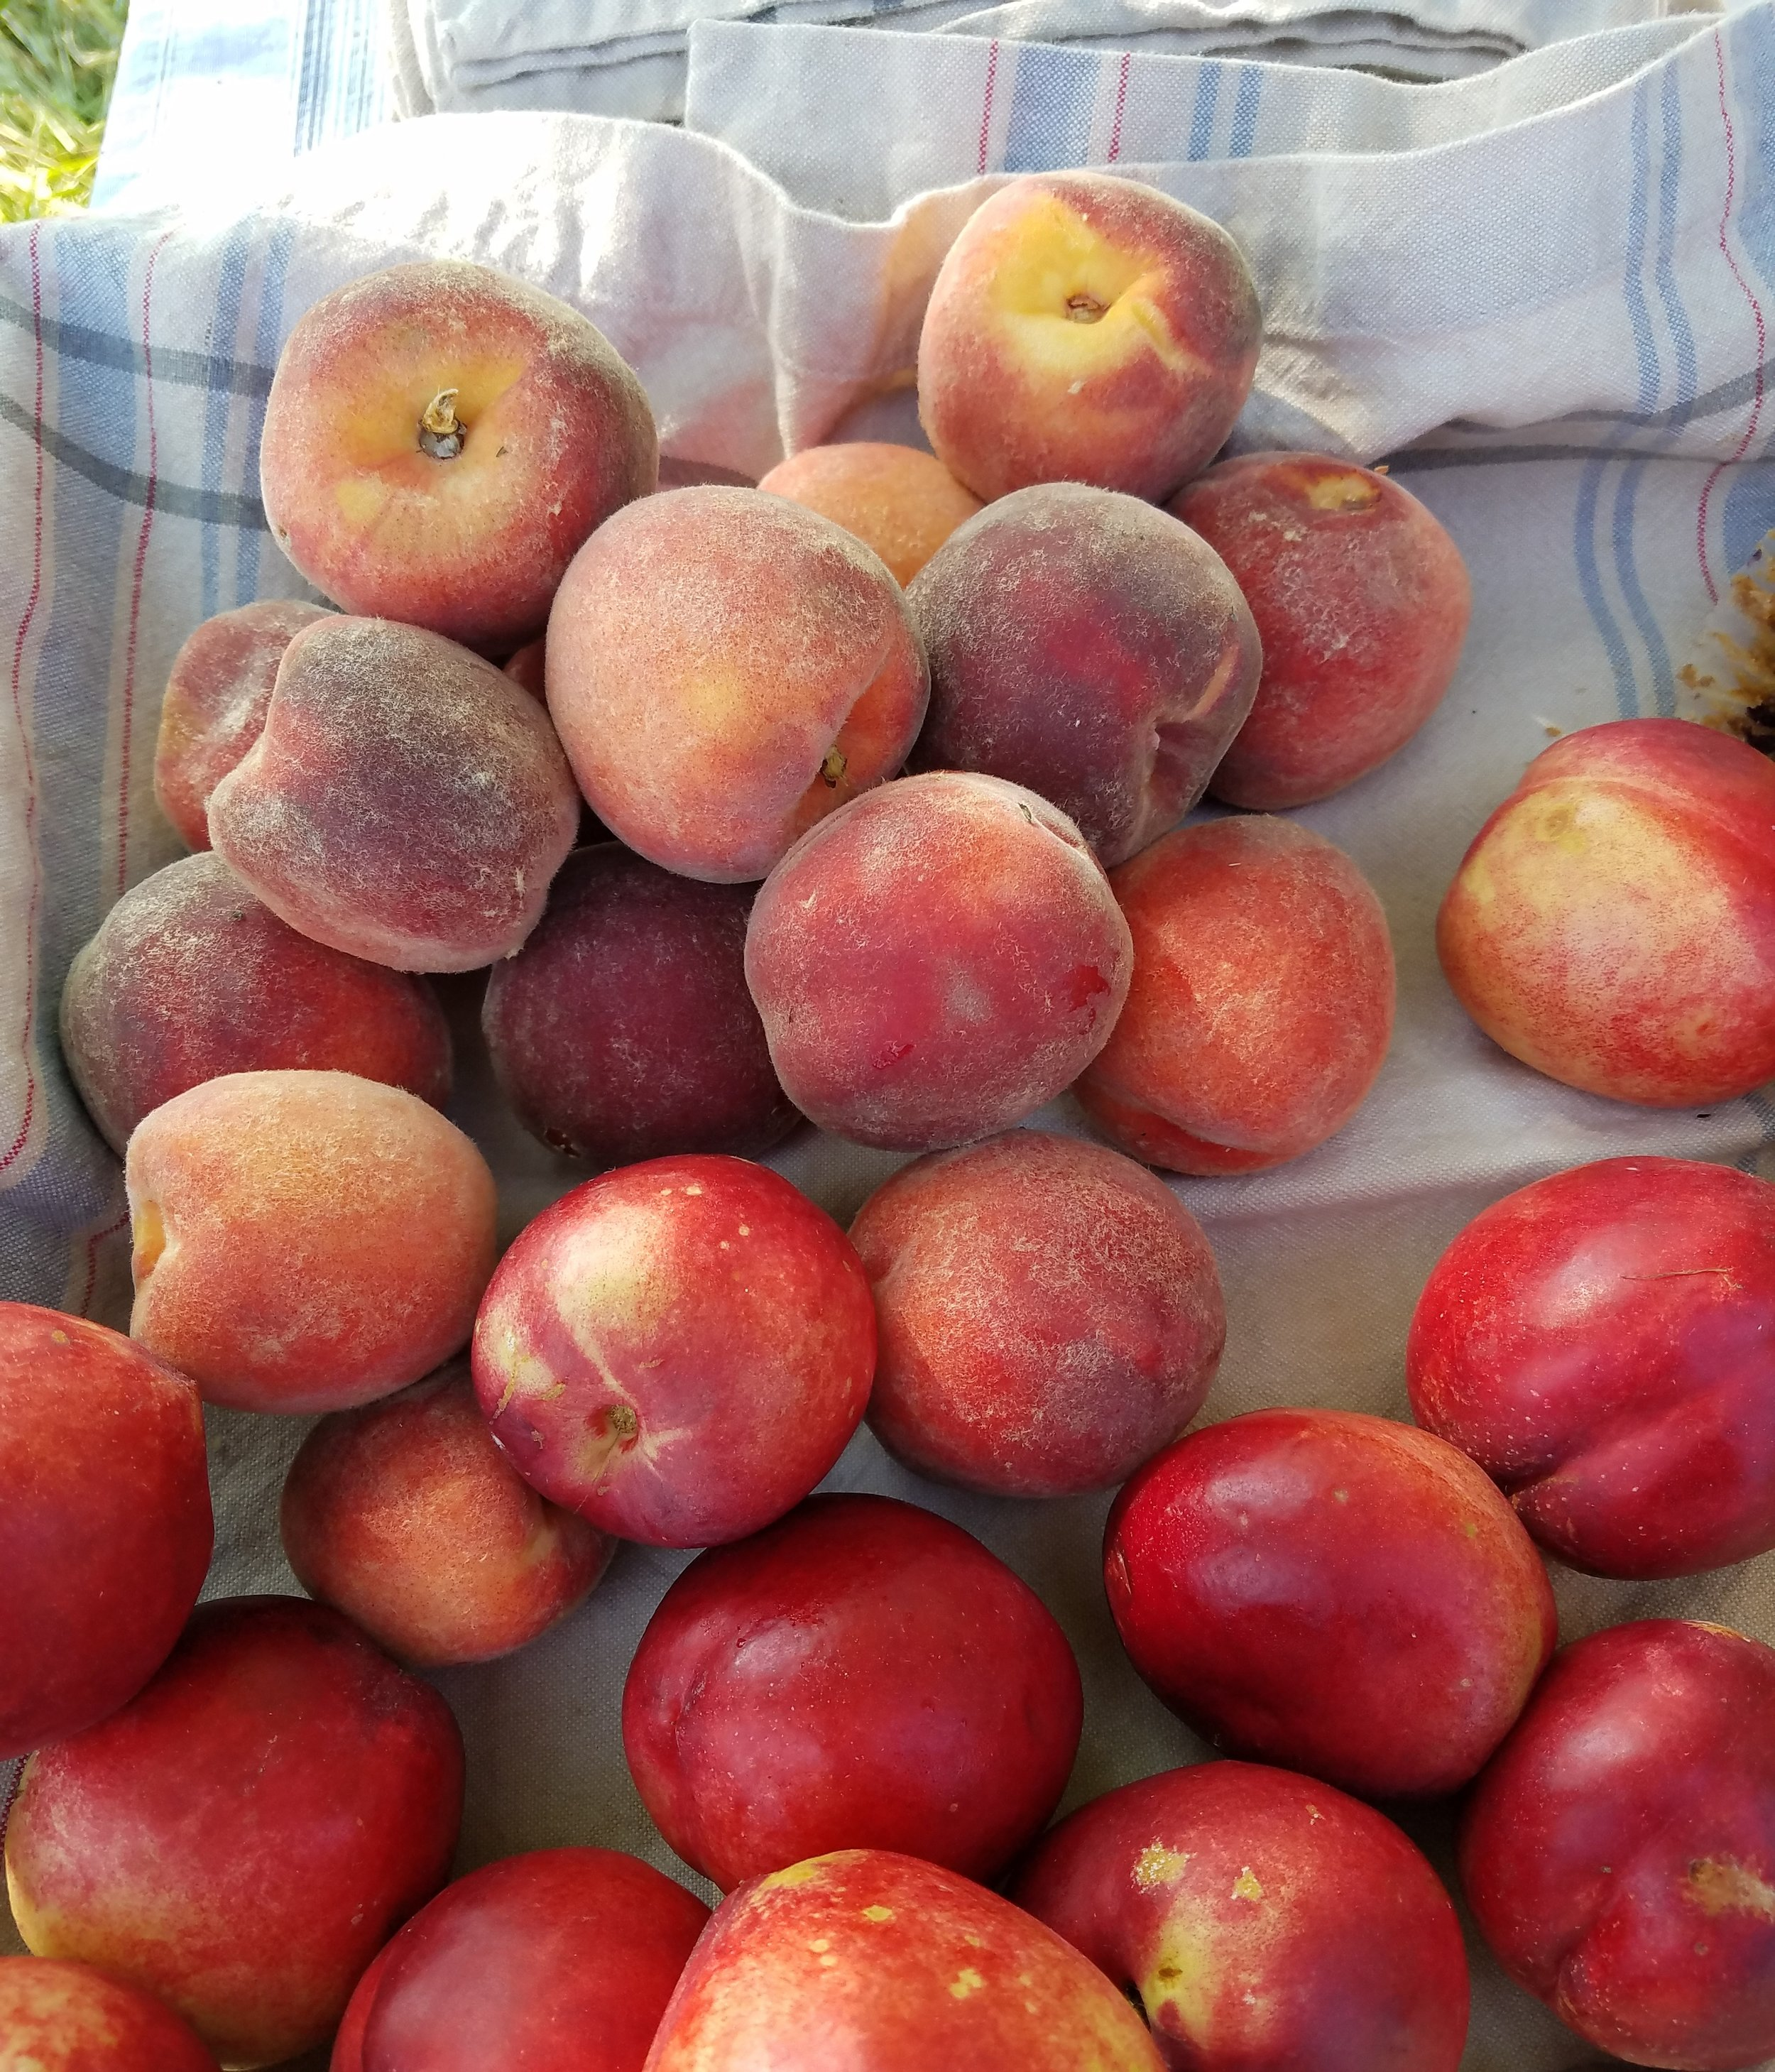 Pick Your Own - We have a growing orchard of fresh fruits so that we can provide our guests with local flavors. Enjoy picking a treat on our property or explore some pick-your-own farms nearby.